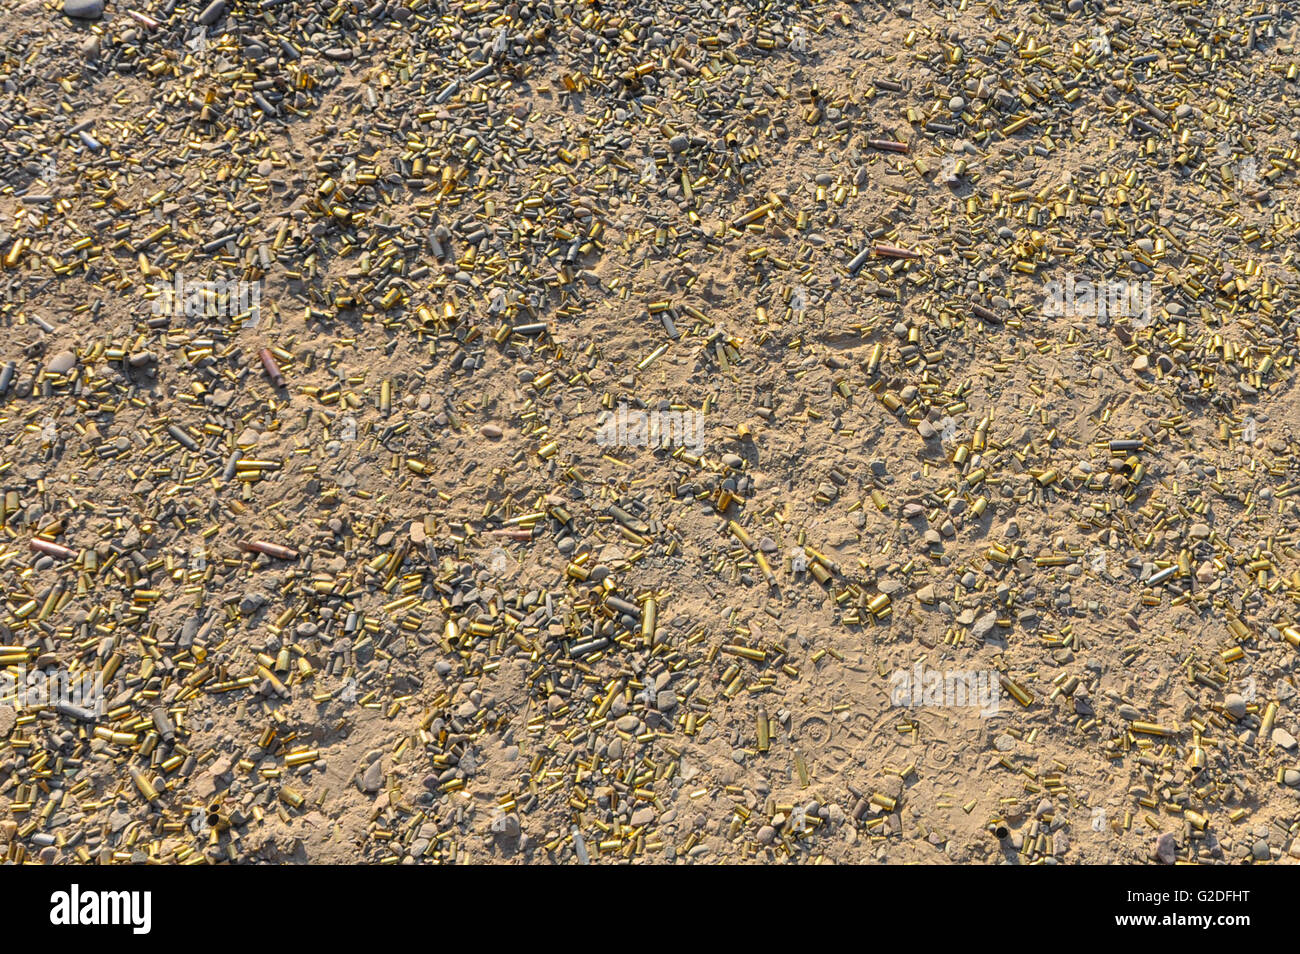 a shot of a ground riddled with spent shell casings from the discharging of guns at a gun range - Stock Image